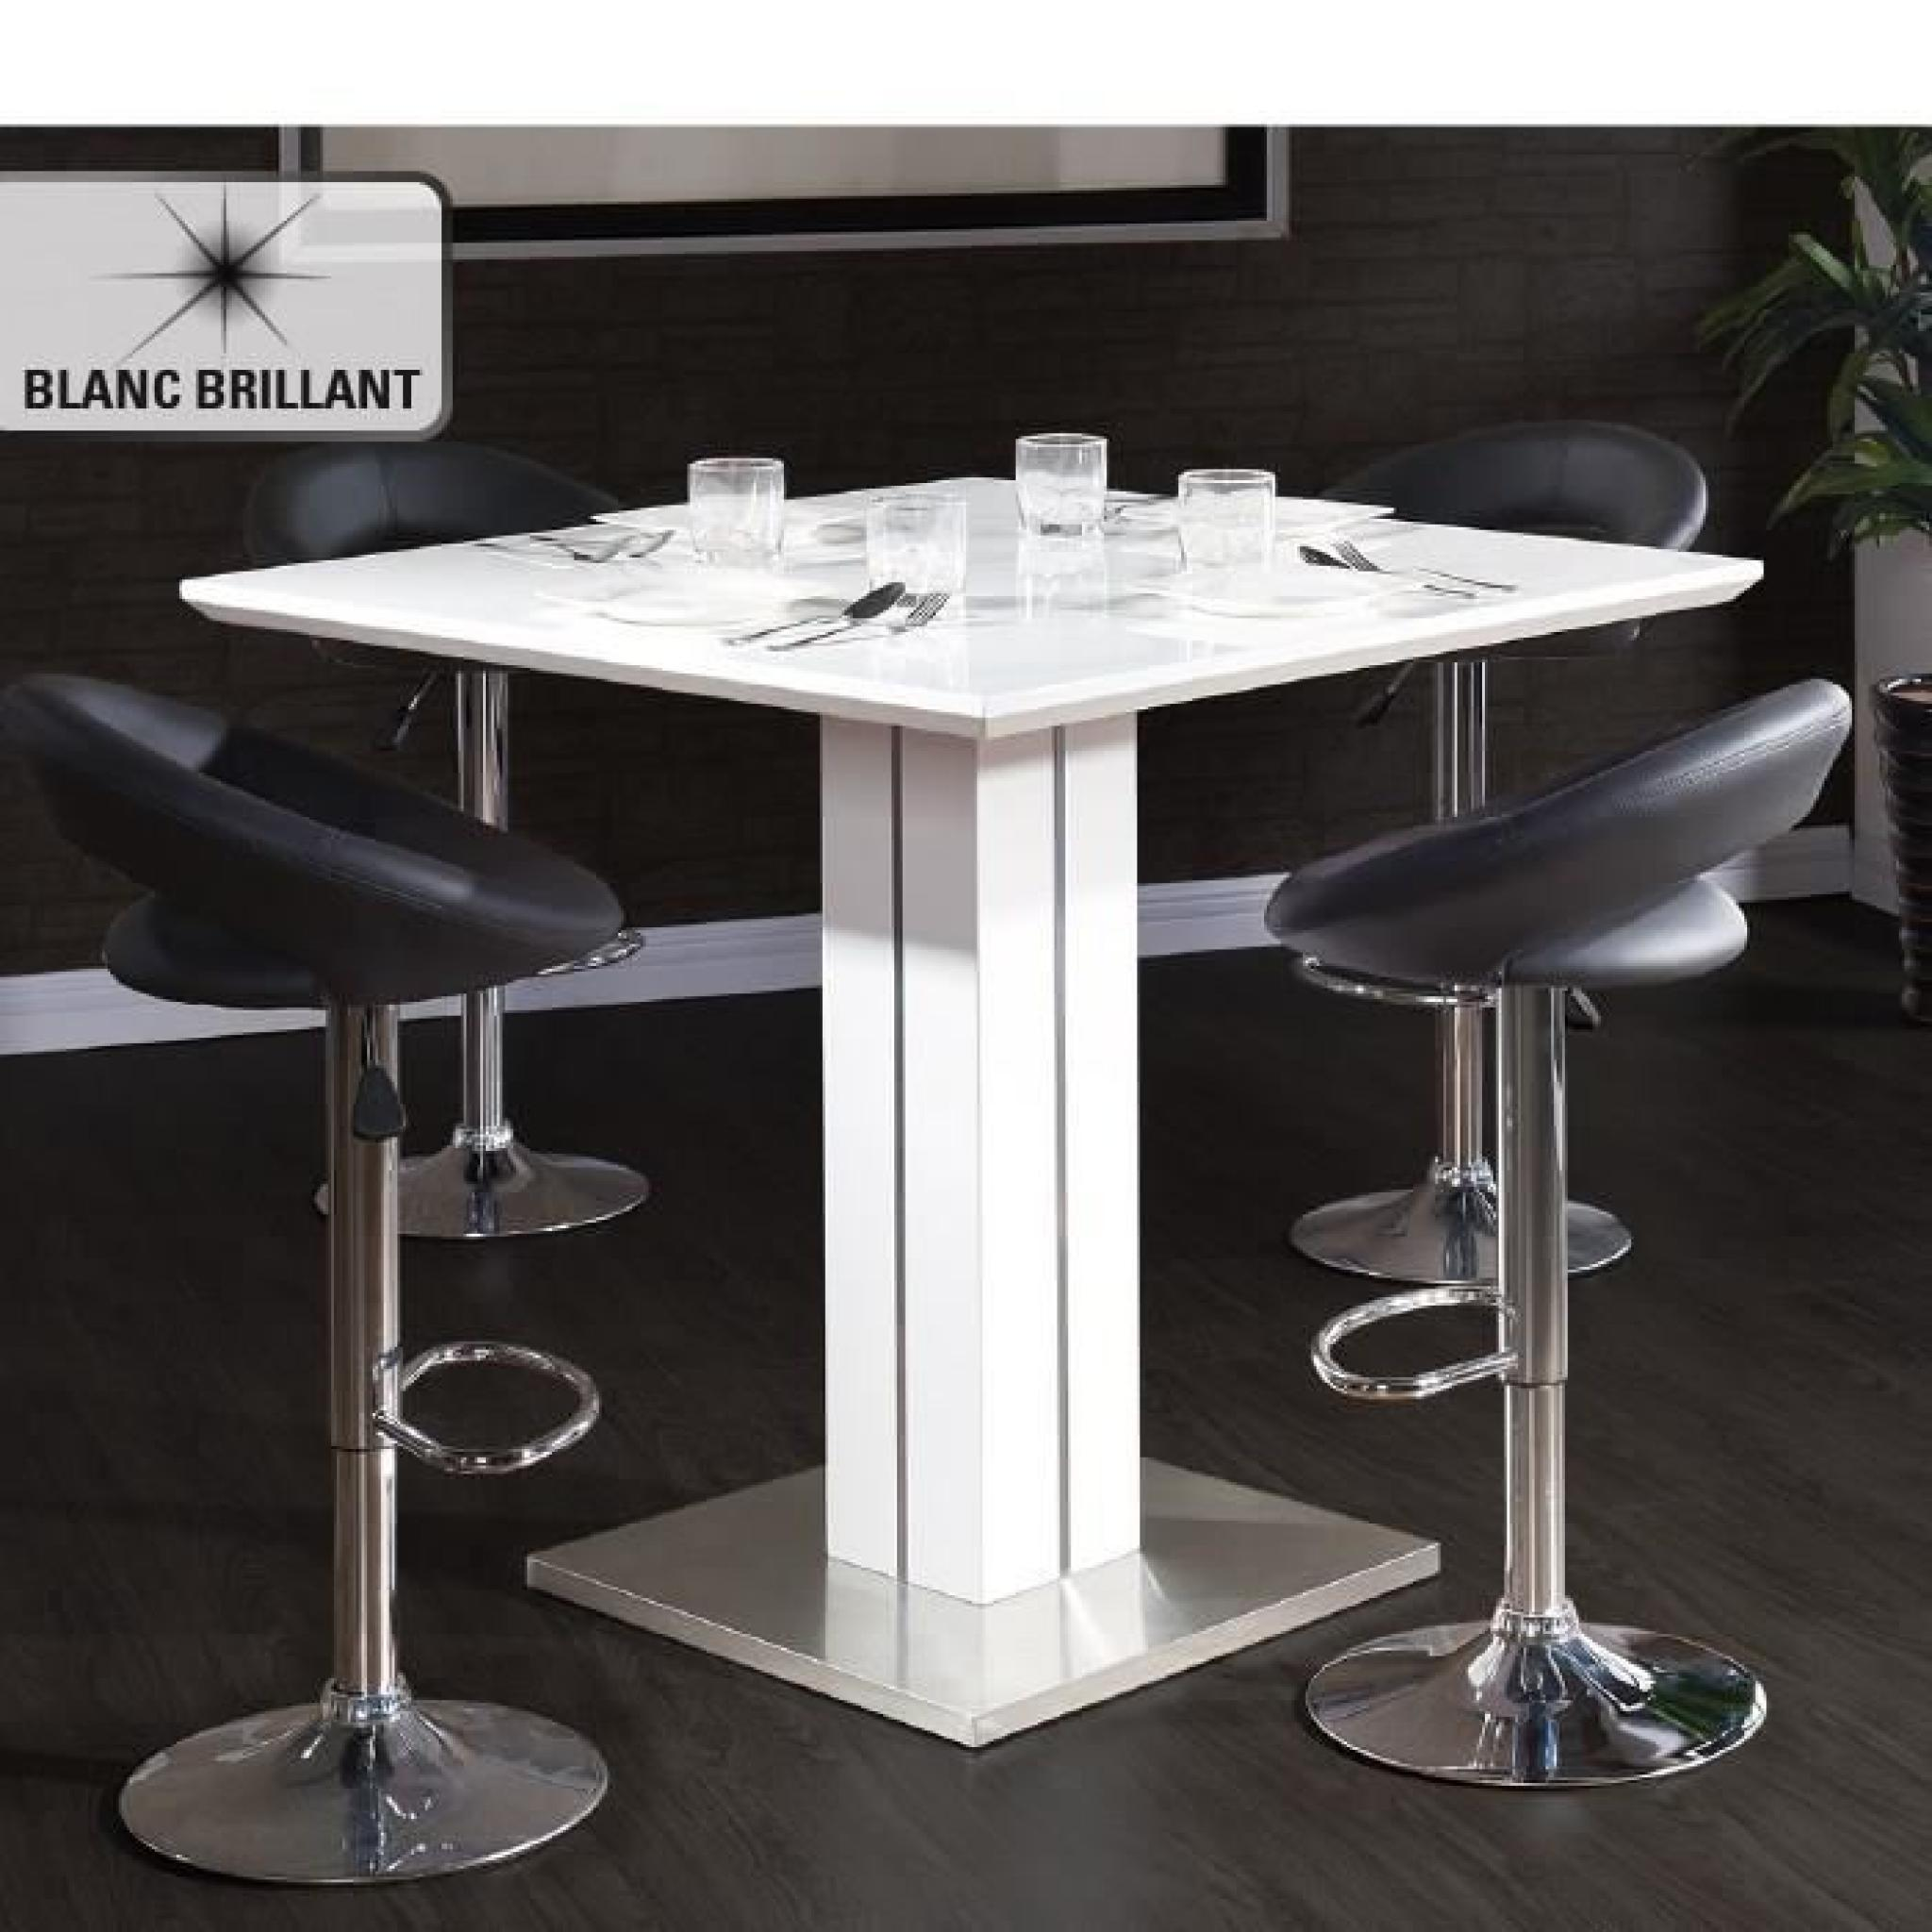 Sandro table de bar 100x100cm laqu blanc brillant achat for Table a manger laque blanc pas cher